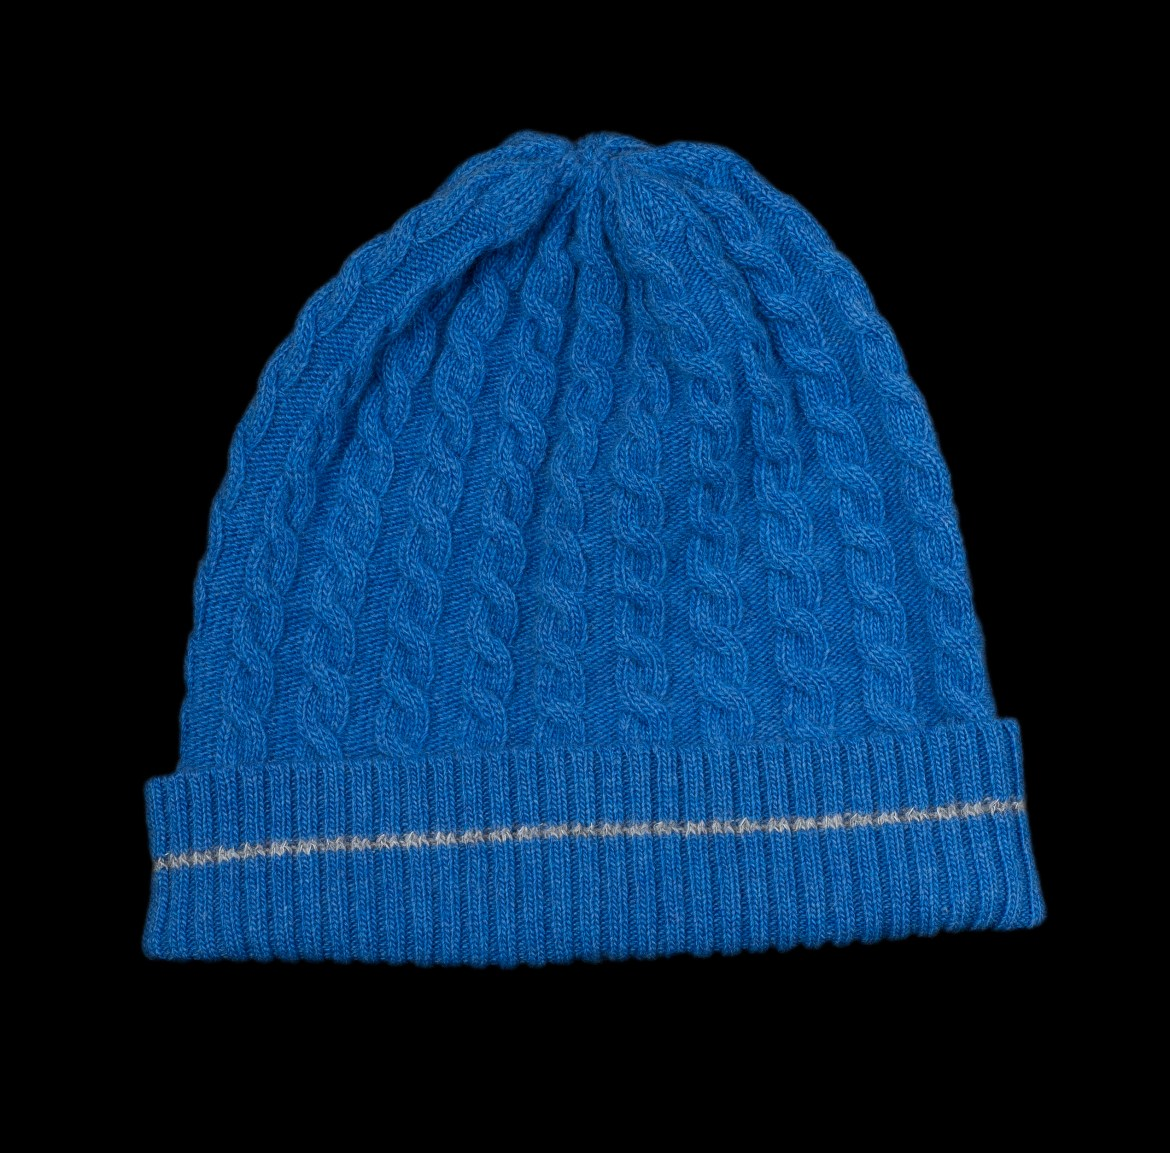 Malena Blue Cable Knit Cashmere Hat